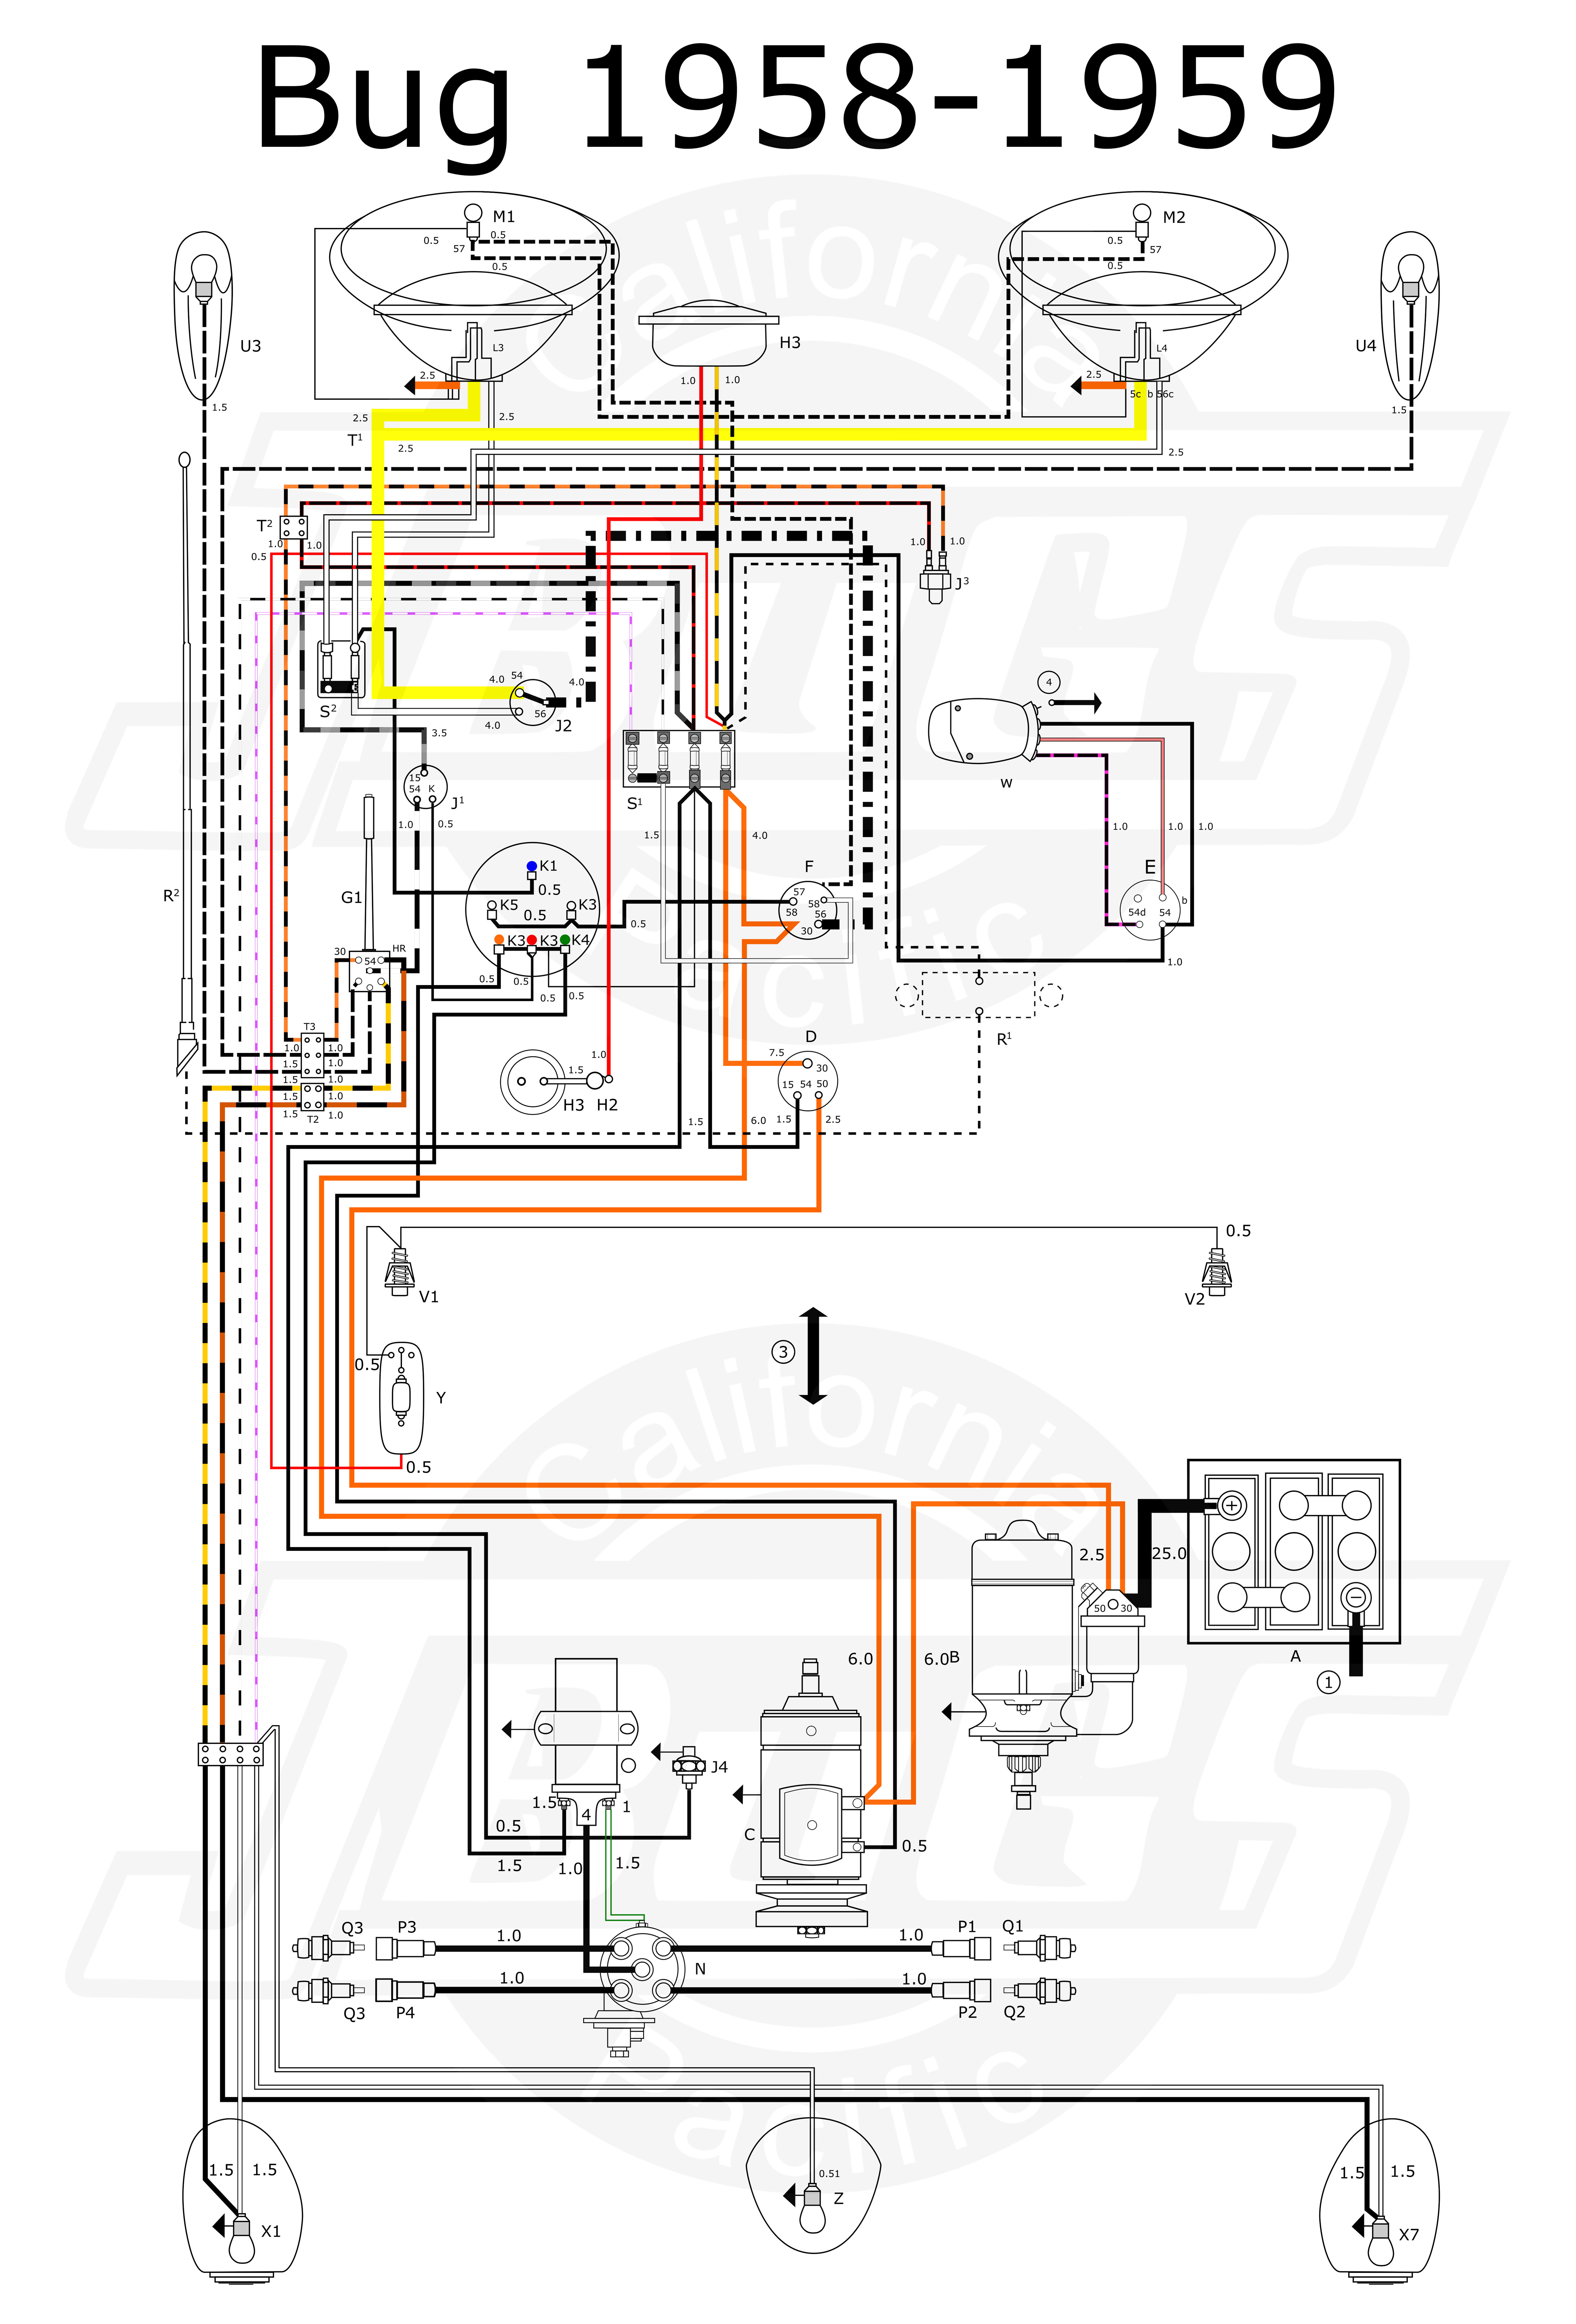 Wiring Diagram As Well Vw Beetle Wiring Diagram Additionally 1972